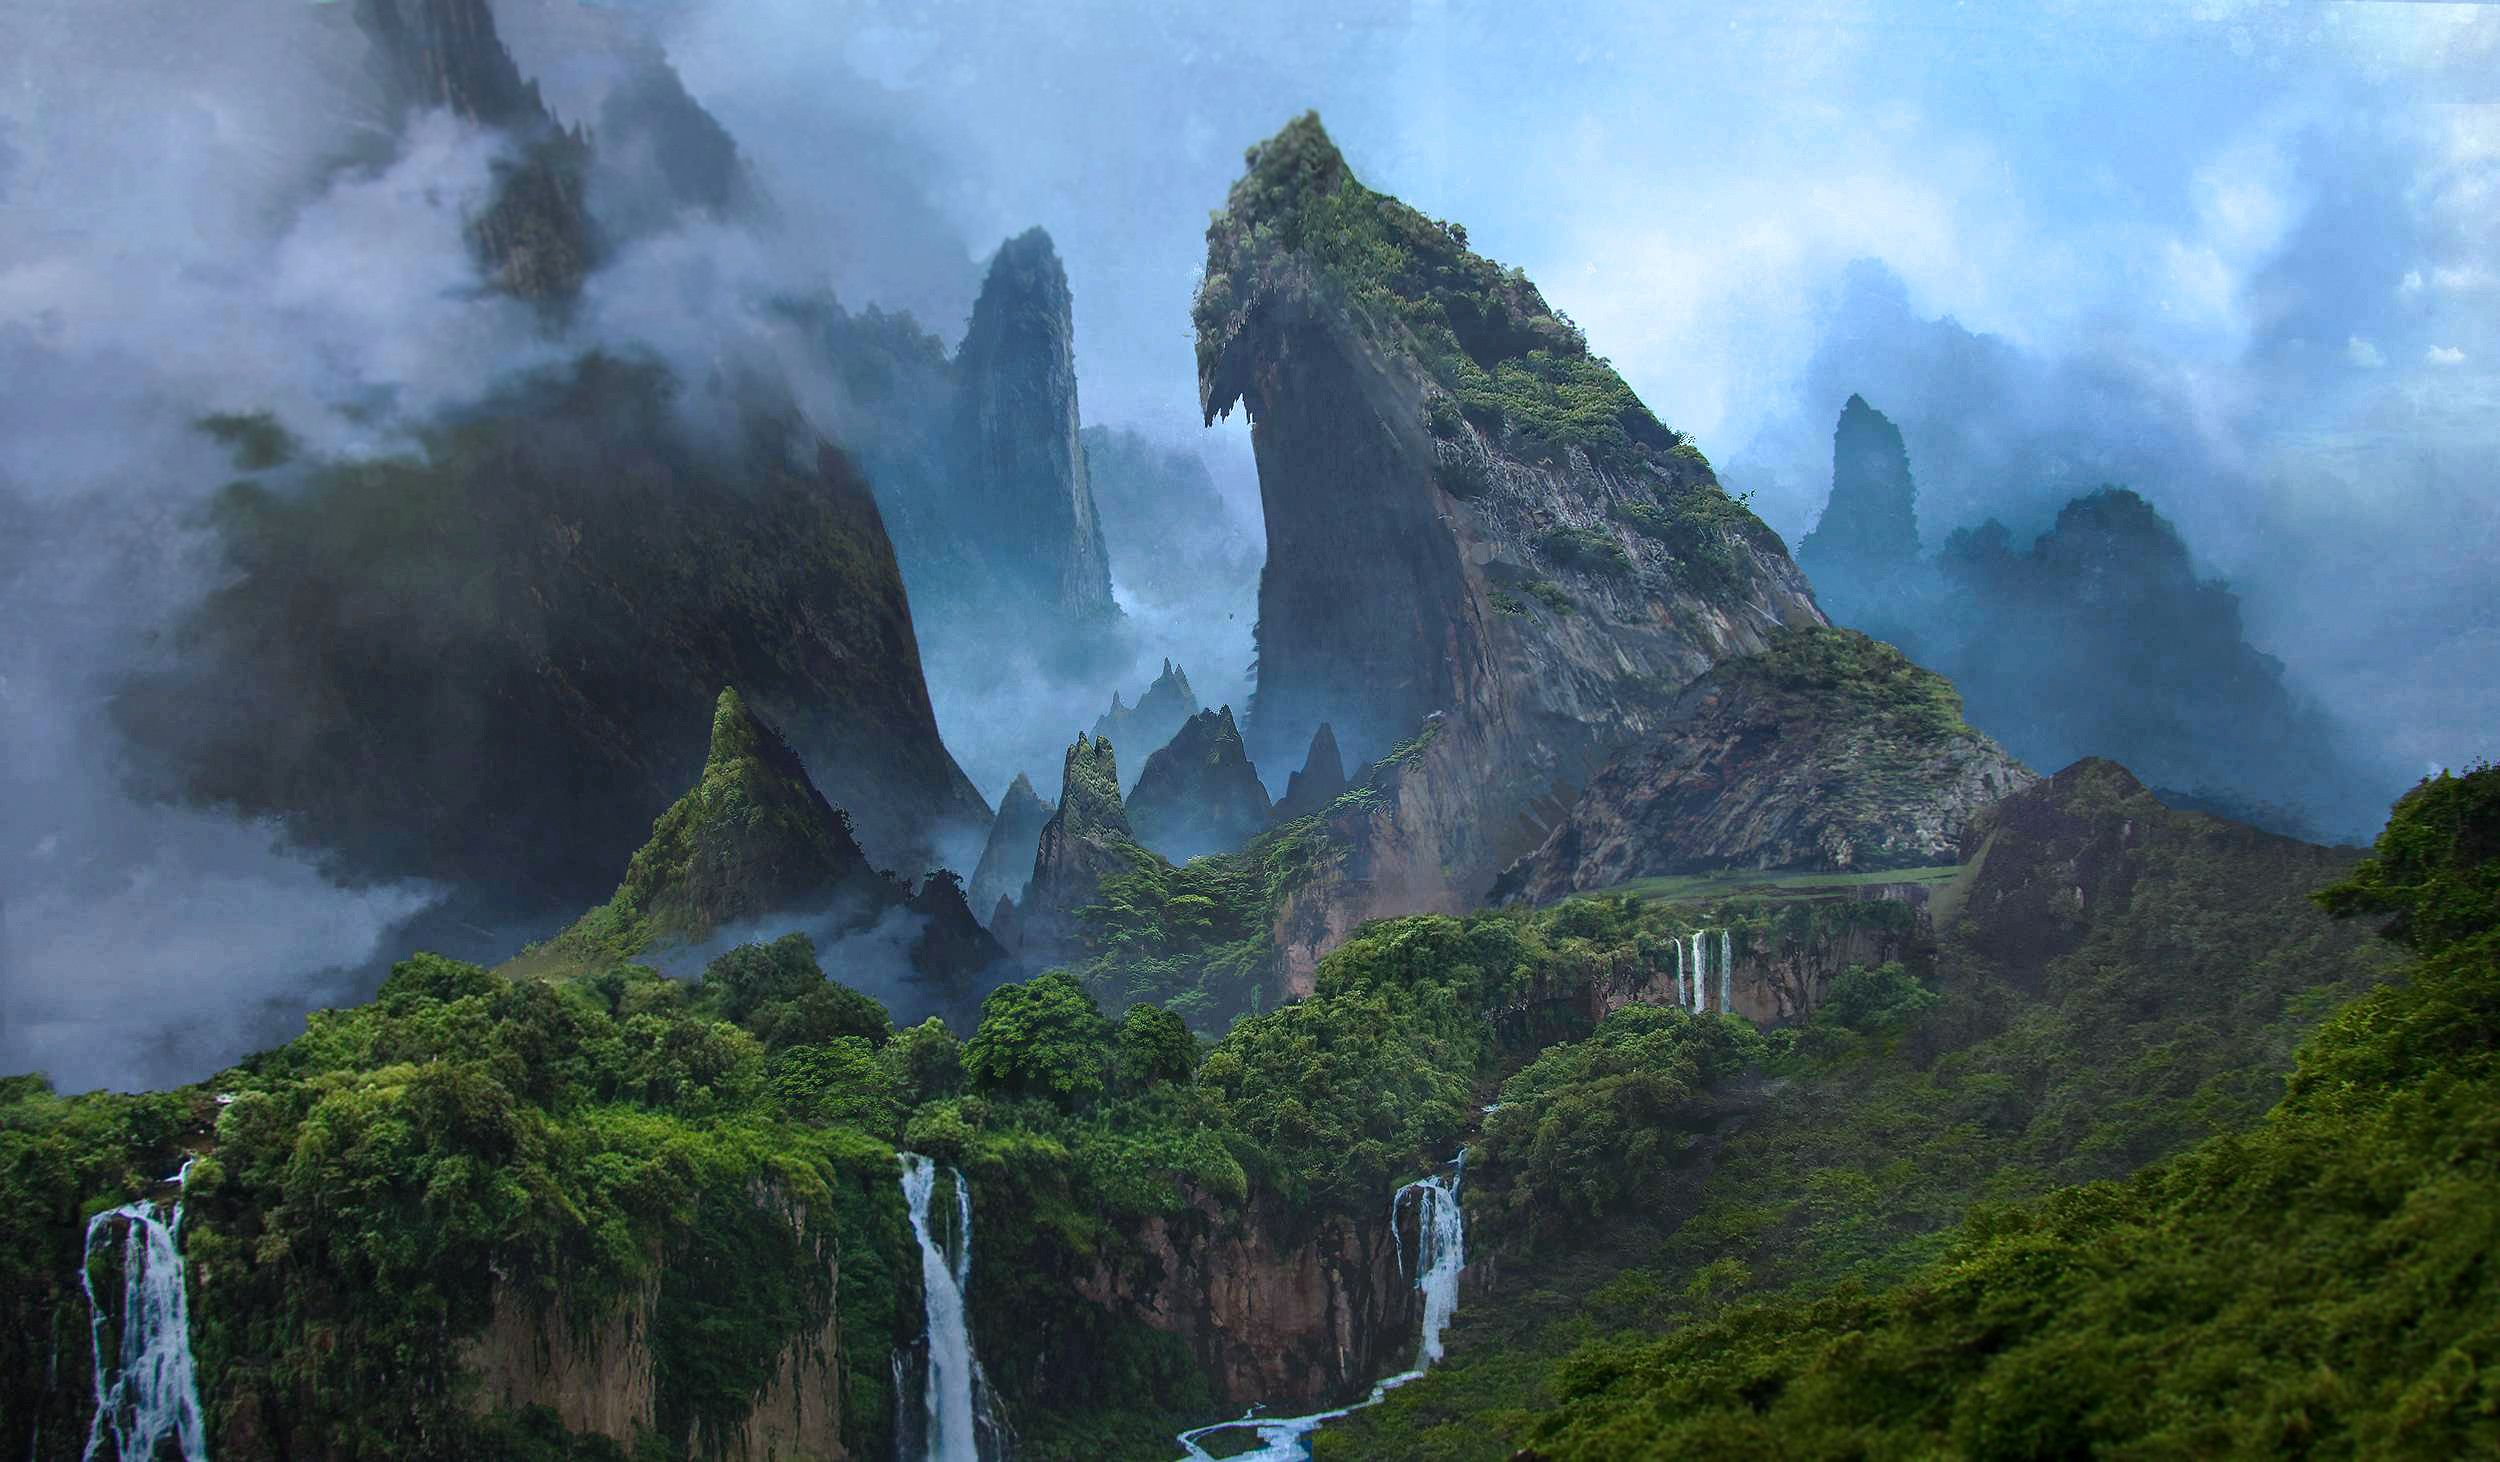 scenic wallpapers, jungle wallpapers, forest wallpapers